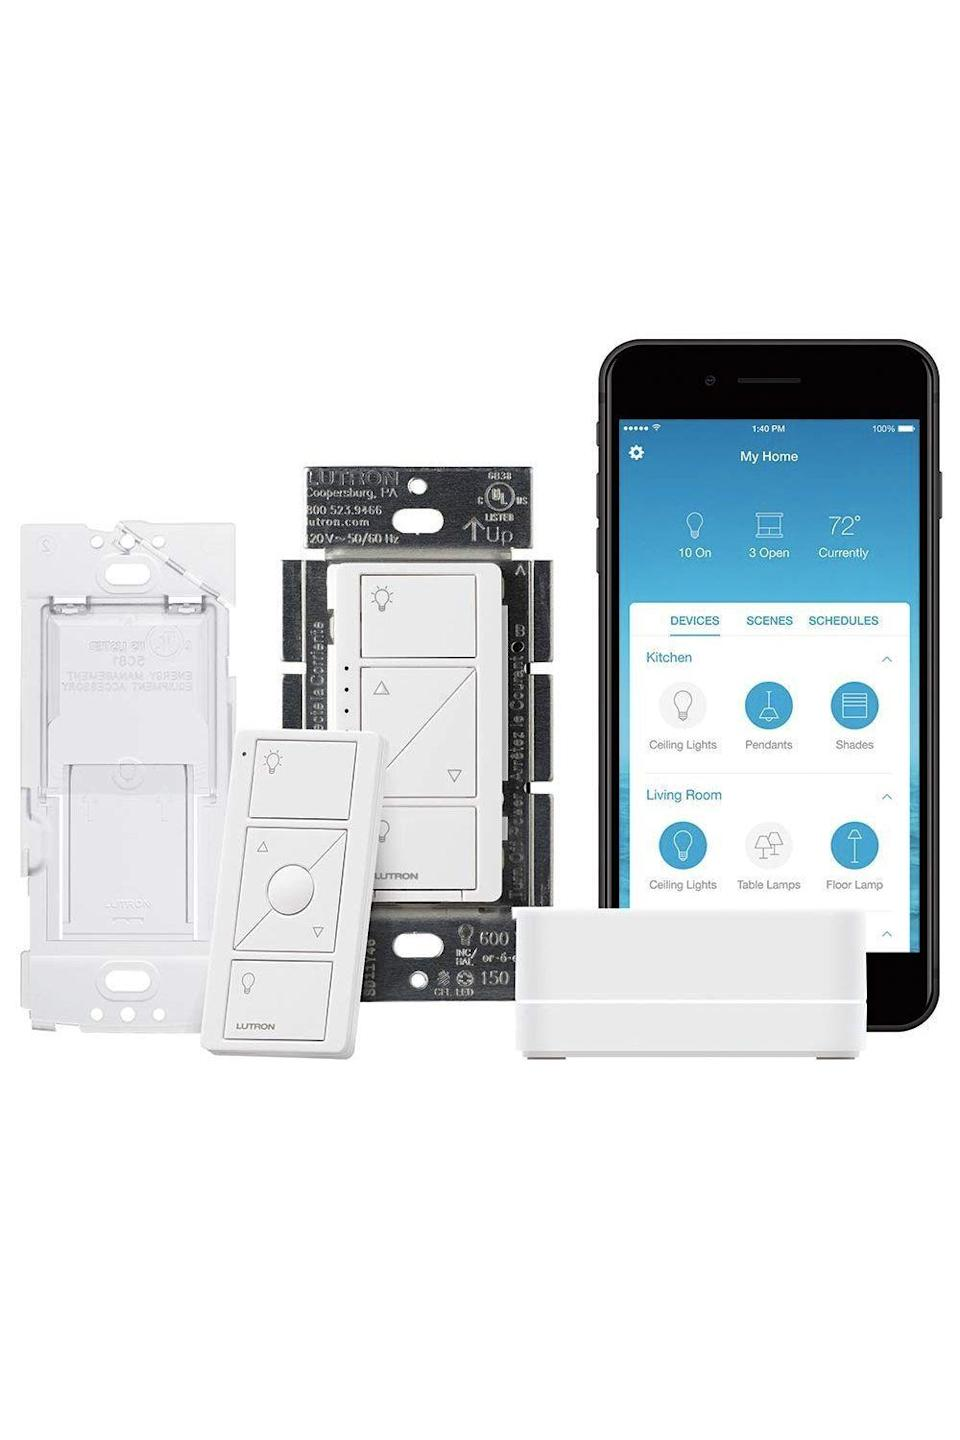 "<p><strong>Lutron </strong></p><p>amazon.com</p><p><strong>$99.95</strong></p><p><a href=""https://www.amazon.com/dp/B07G5V6M6G?tag=syn-yahoo-20&ascsubtag=%5Bartid%7C10055.g.3950%5Bsrc%7Cyahoo-us"" rel=""nofollow noopener"" target=""_blank"" data-ylk=""slk:Shop Now"" class=""link rapid-noclick-resp"">Shop Now</a></p><p>With this smart lighting system by Lutron, dad can control the lights from anywhere with his smartphone, smartwatch, or voice control. That means he can turn lights off without moving an inch — or turn 'em on to give the impression that someone's home even when they're not. </p>"